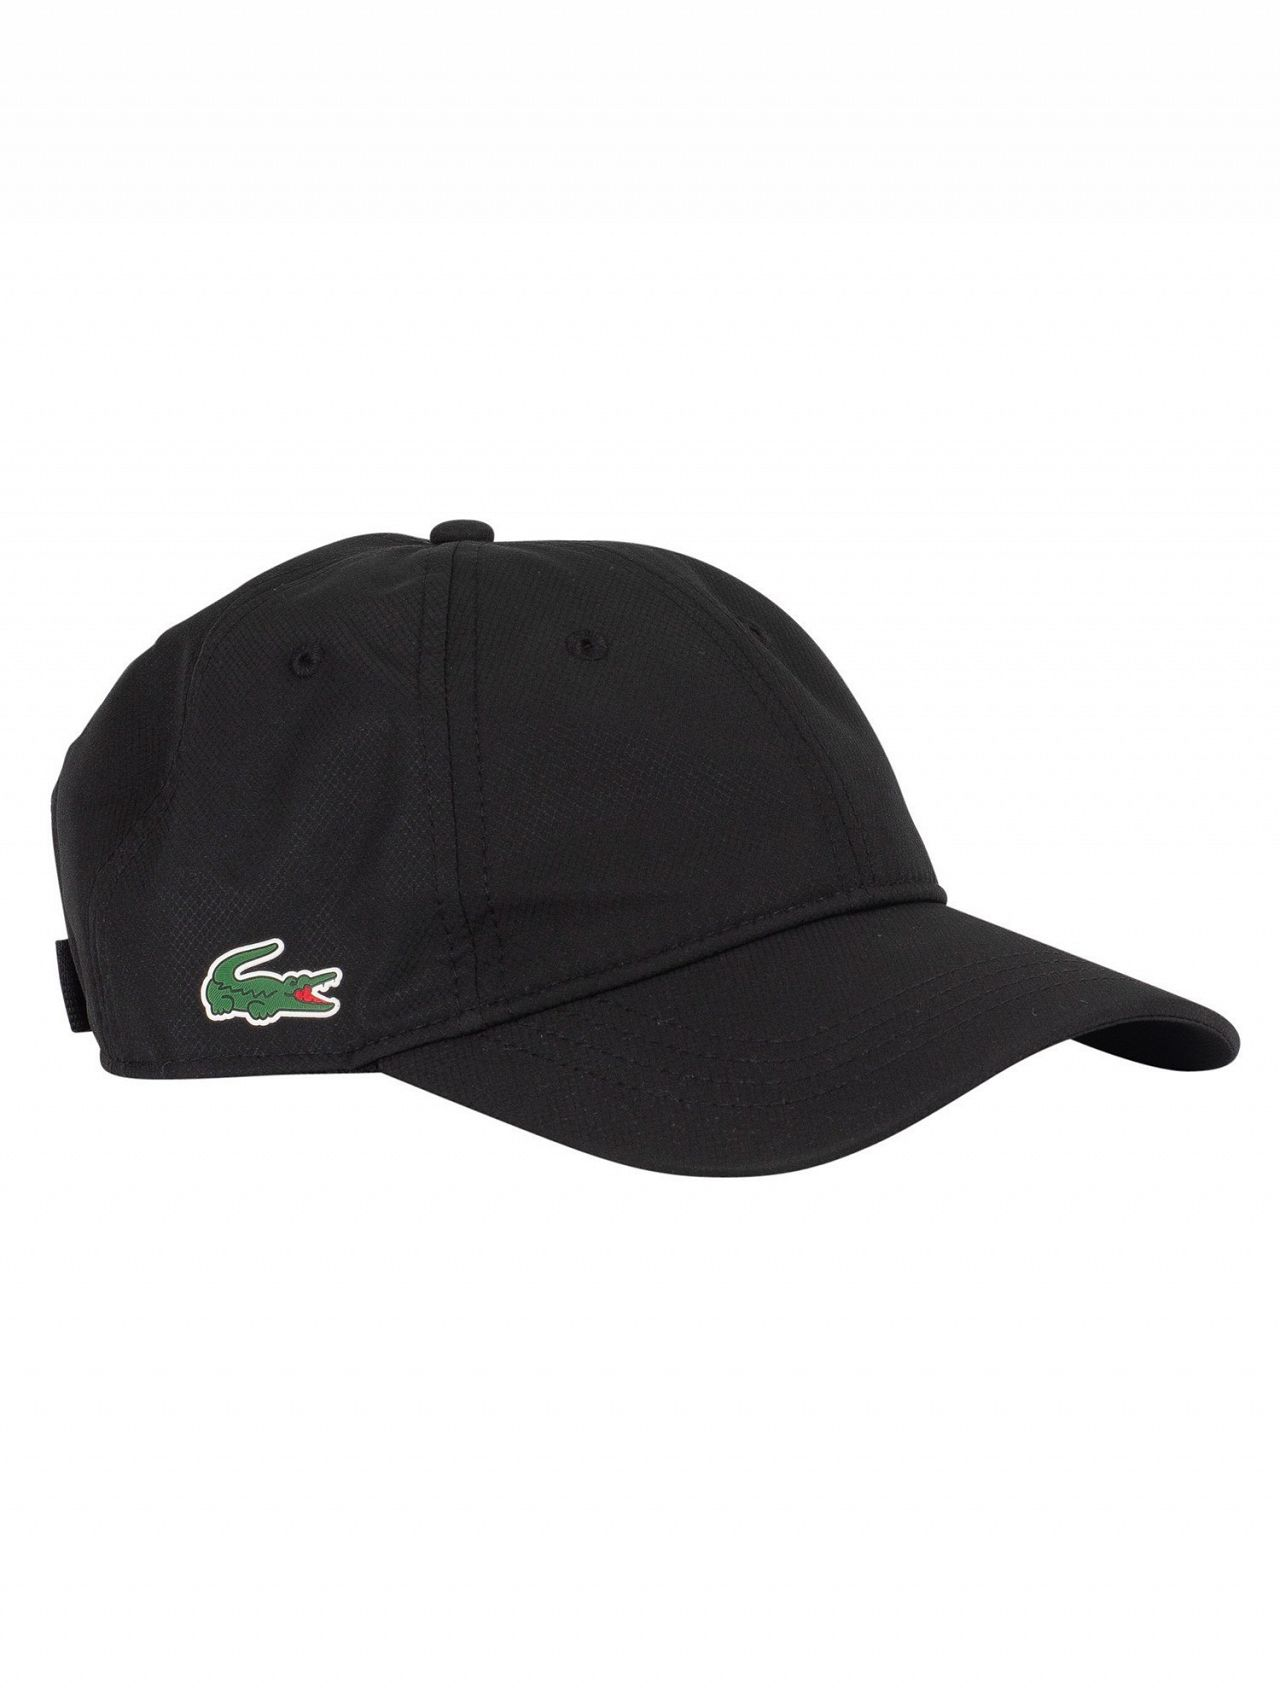 Lacoste Black Small Logo Baseball Cap. Tap to expand fb53b542761